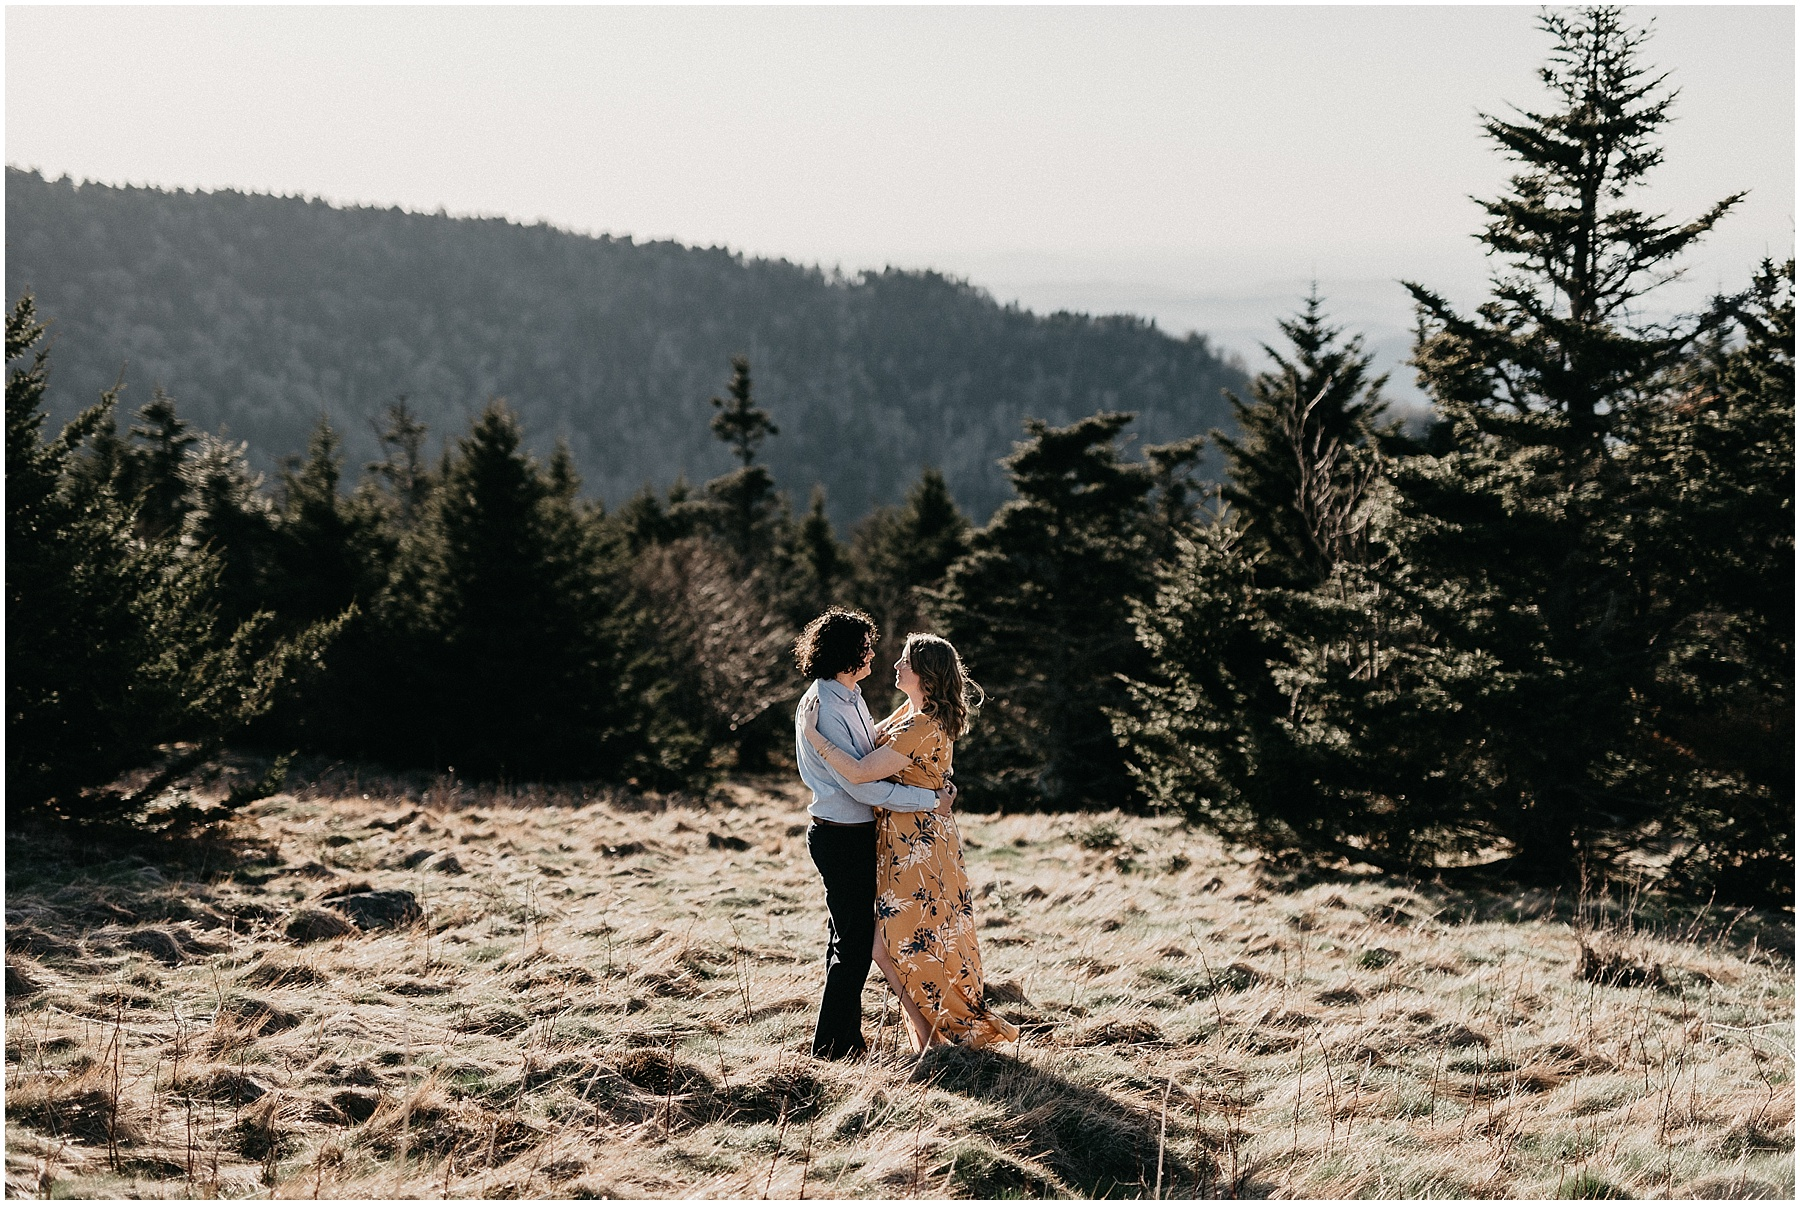 Boone_Engagement_Photographer_06.jpg